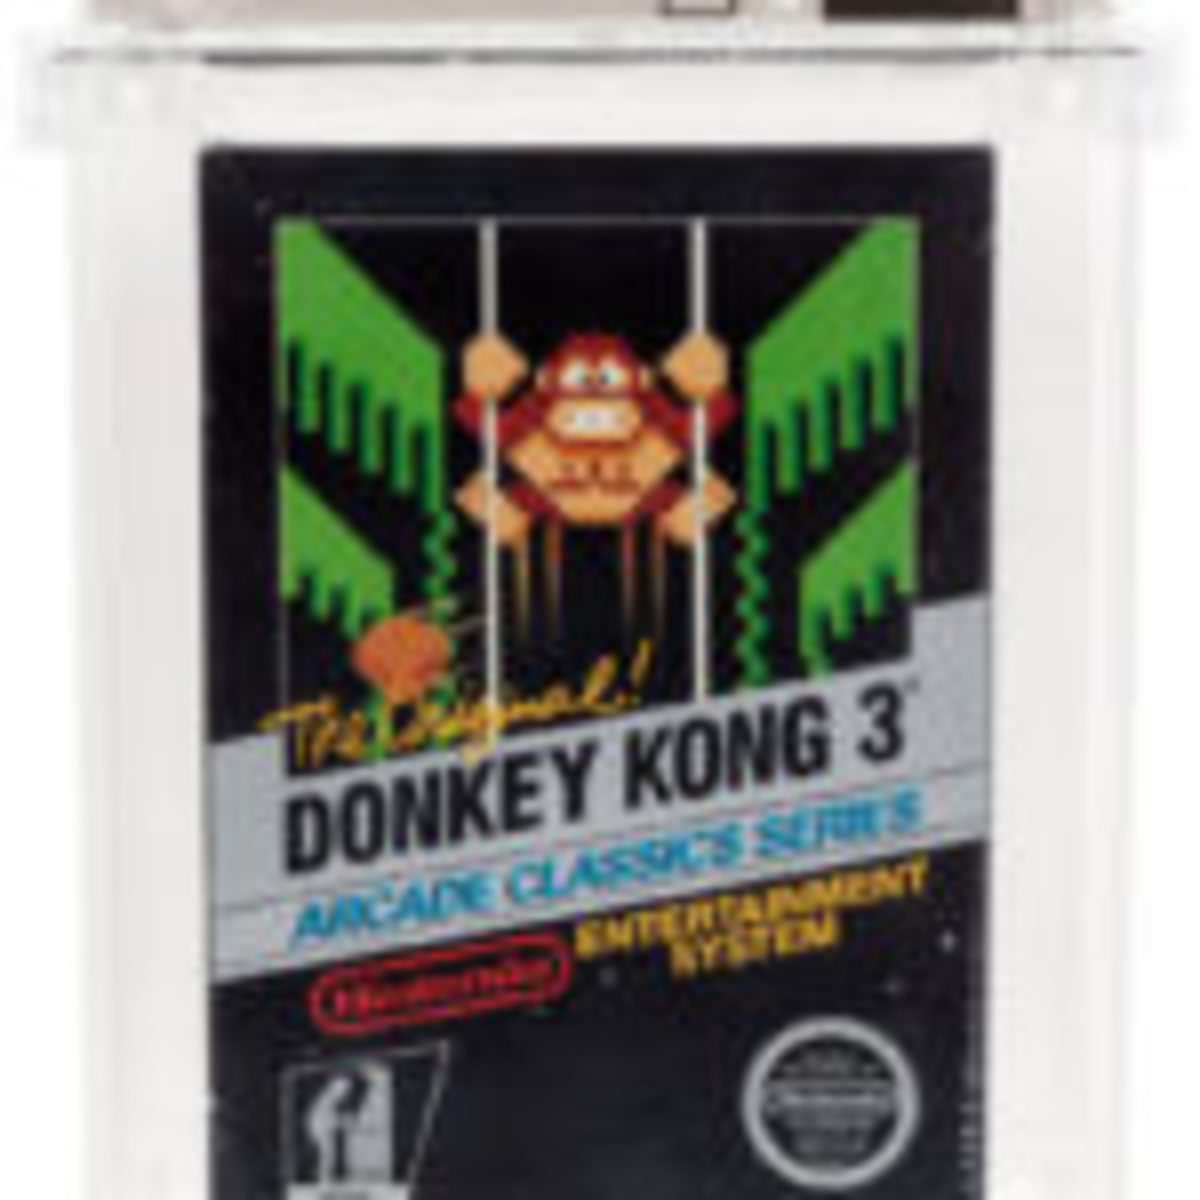 Donkey Kong 3 (NES, Nintendo, 1986) Wata 9.2 A (Seal Rating) Variant: Sealed Hangtab, 4th Revision, 2 Codes. Photos courtesy of Heritage Auctions, www.ha.com.